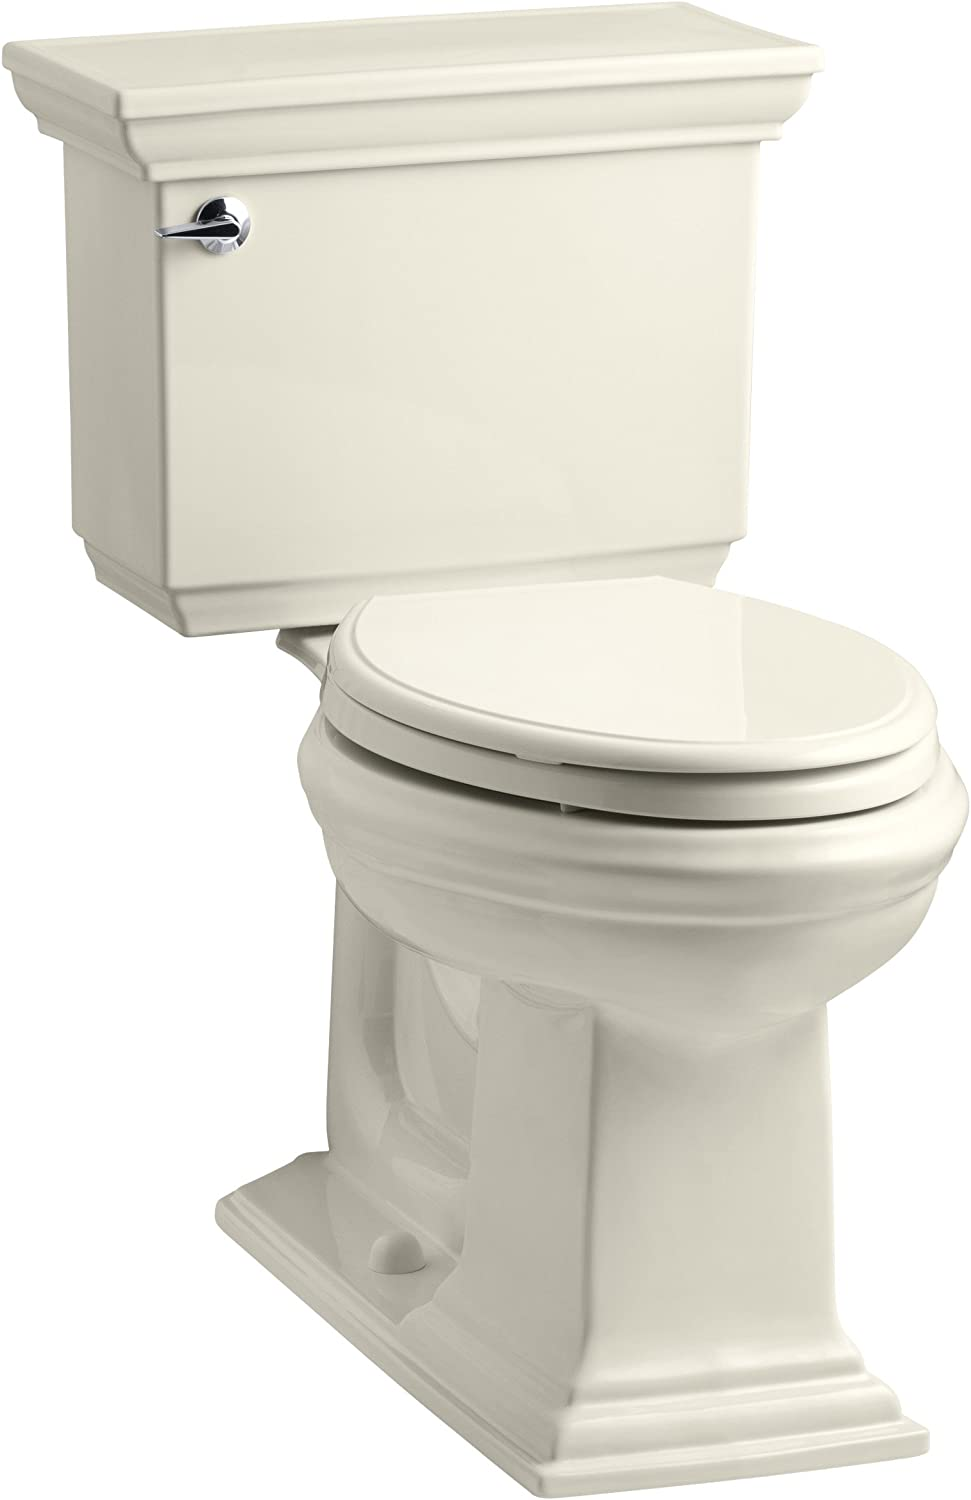 Almond Kohler K-3819-47 Memoirs/Â Stately Comfort Height/Â Toilet